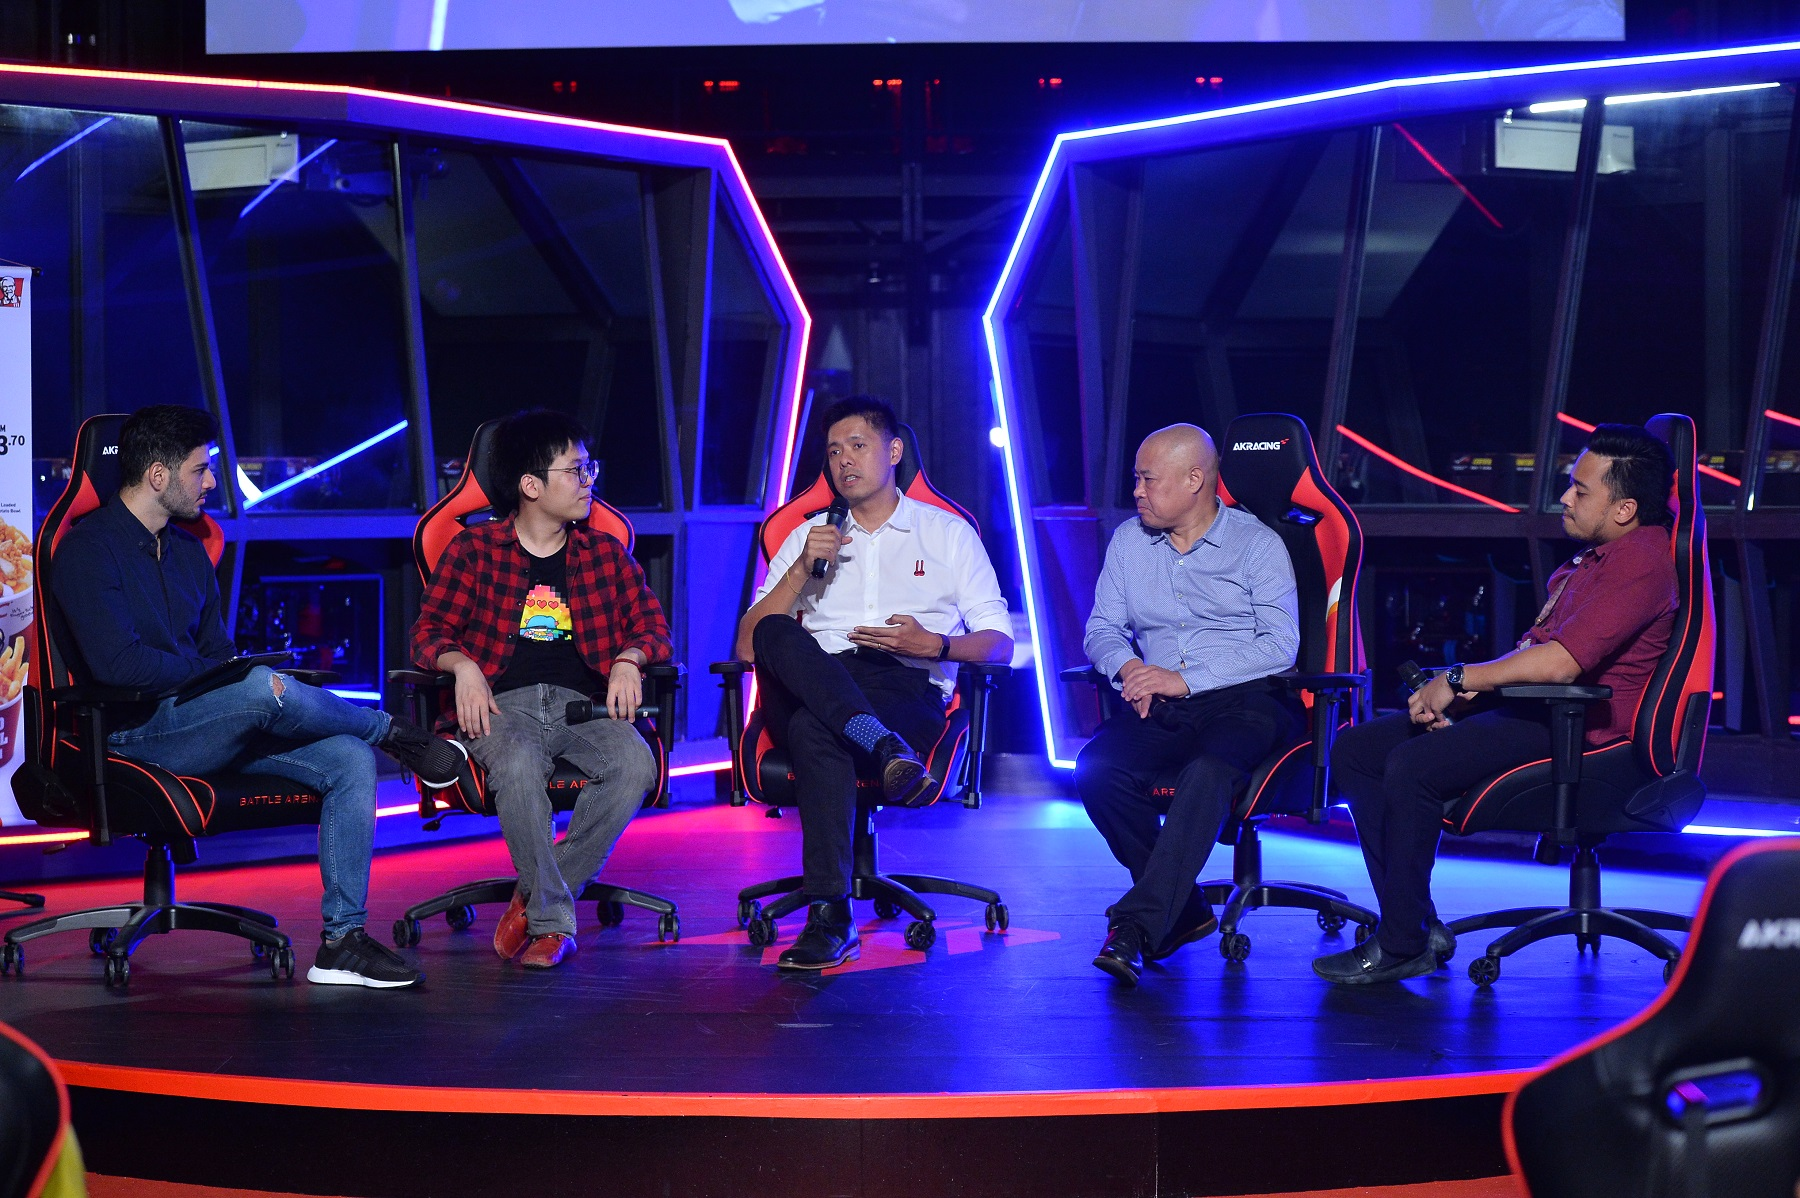 R to L_ Mohd Syazwan bin Mohd Hanafie, National Sports Council of Malaysia; Richard Lee, CMO, DU Recorder; Lee Choong Khay, Chief of Sports, Astro; Ng Yubin, Tamago